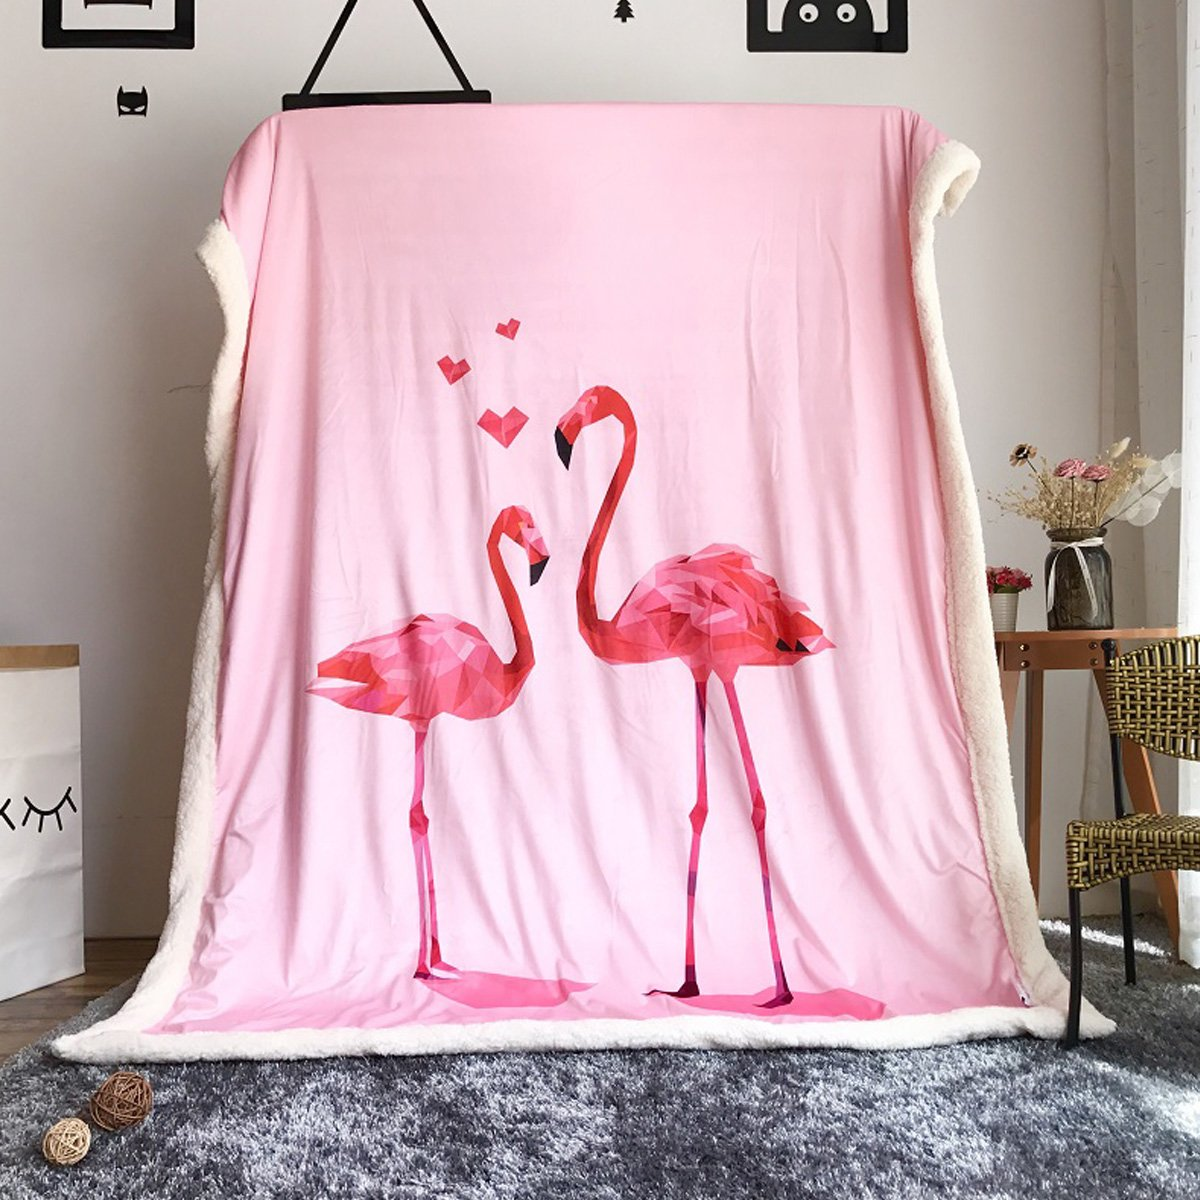 Laugh Cat Pink Flamingo Throw Blanket Nap Blanket for Office Study Kids' Bedding Tapestry Wall Hanging … (Pink)